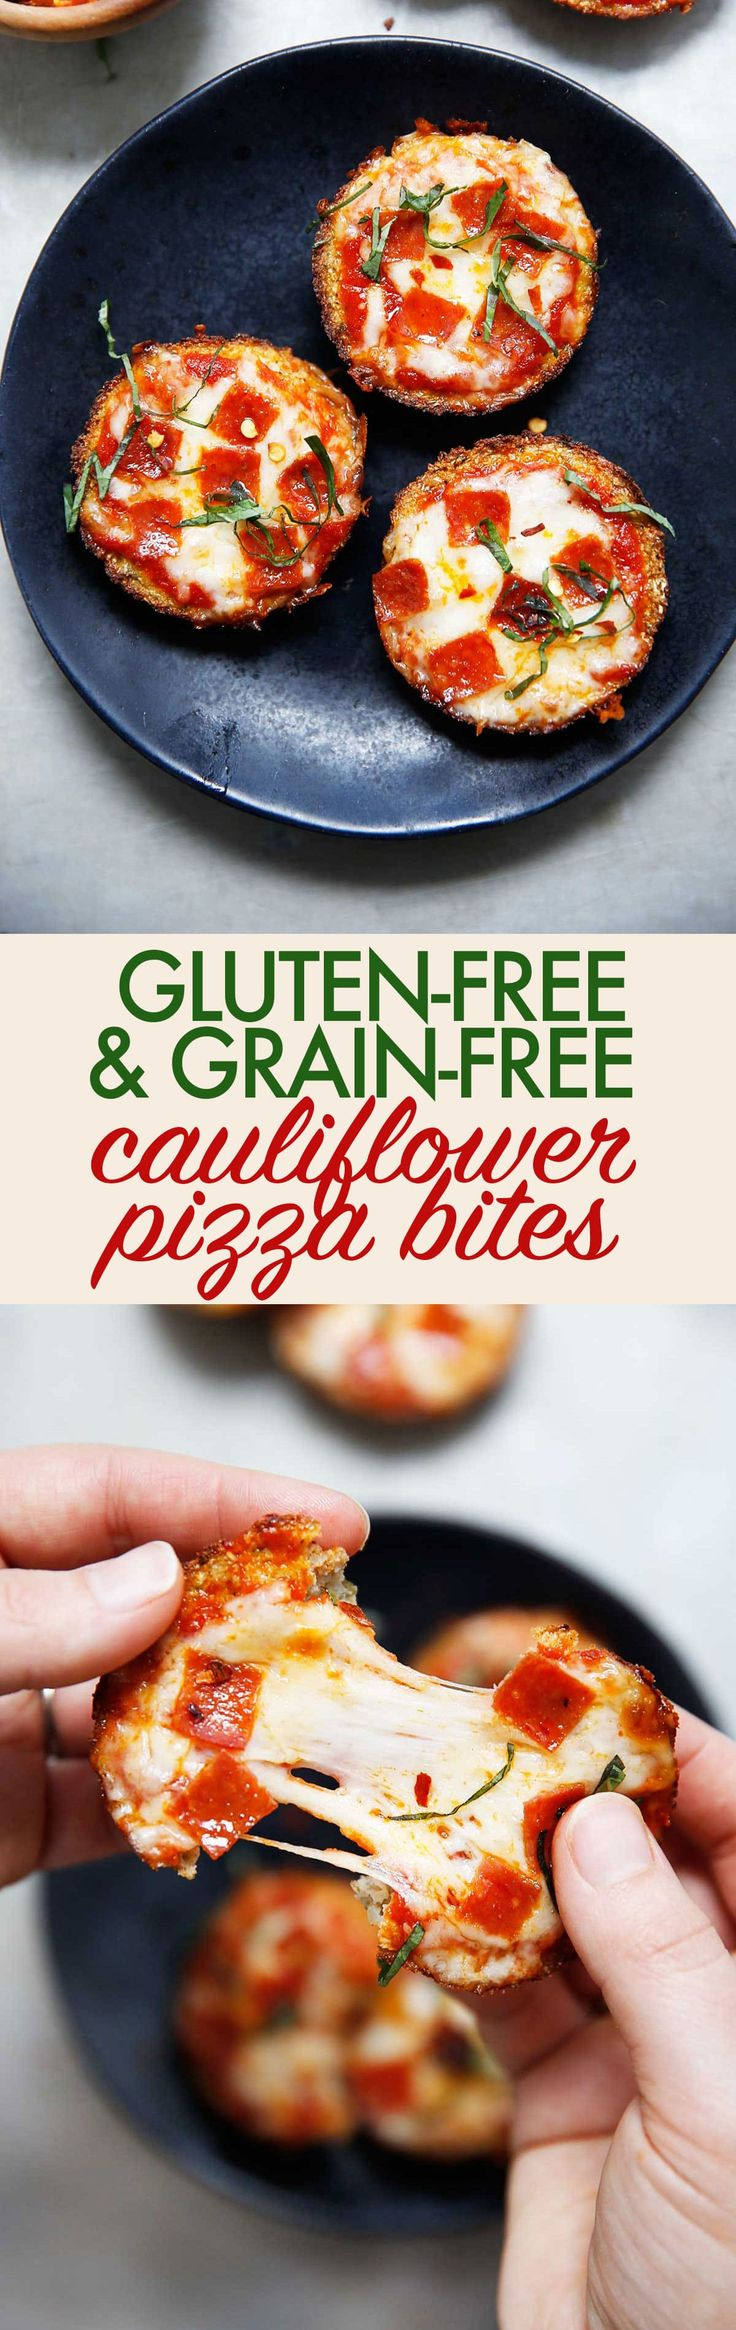 These gluten-free & grain-free Mini Cauliflower Pizza Bites are the PERFECT weeknight dinner, grab-and-go lunch, or party appetizer. This bite-size cauliflower pizza crust recipe can fool even the non-cauliflower lover! They are paleo-friendly if you omit the cheese, and so delicious!